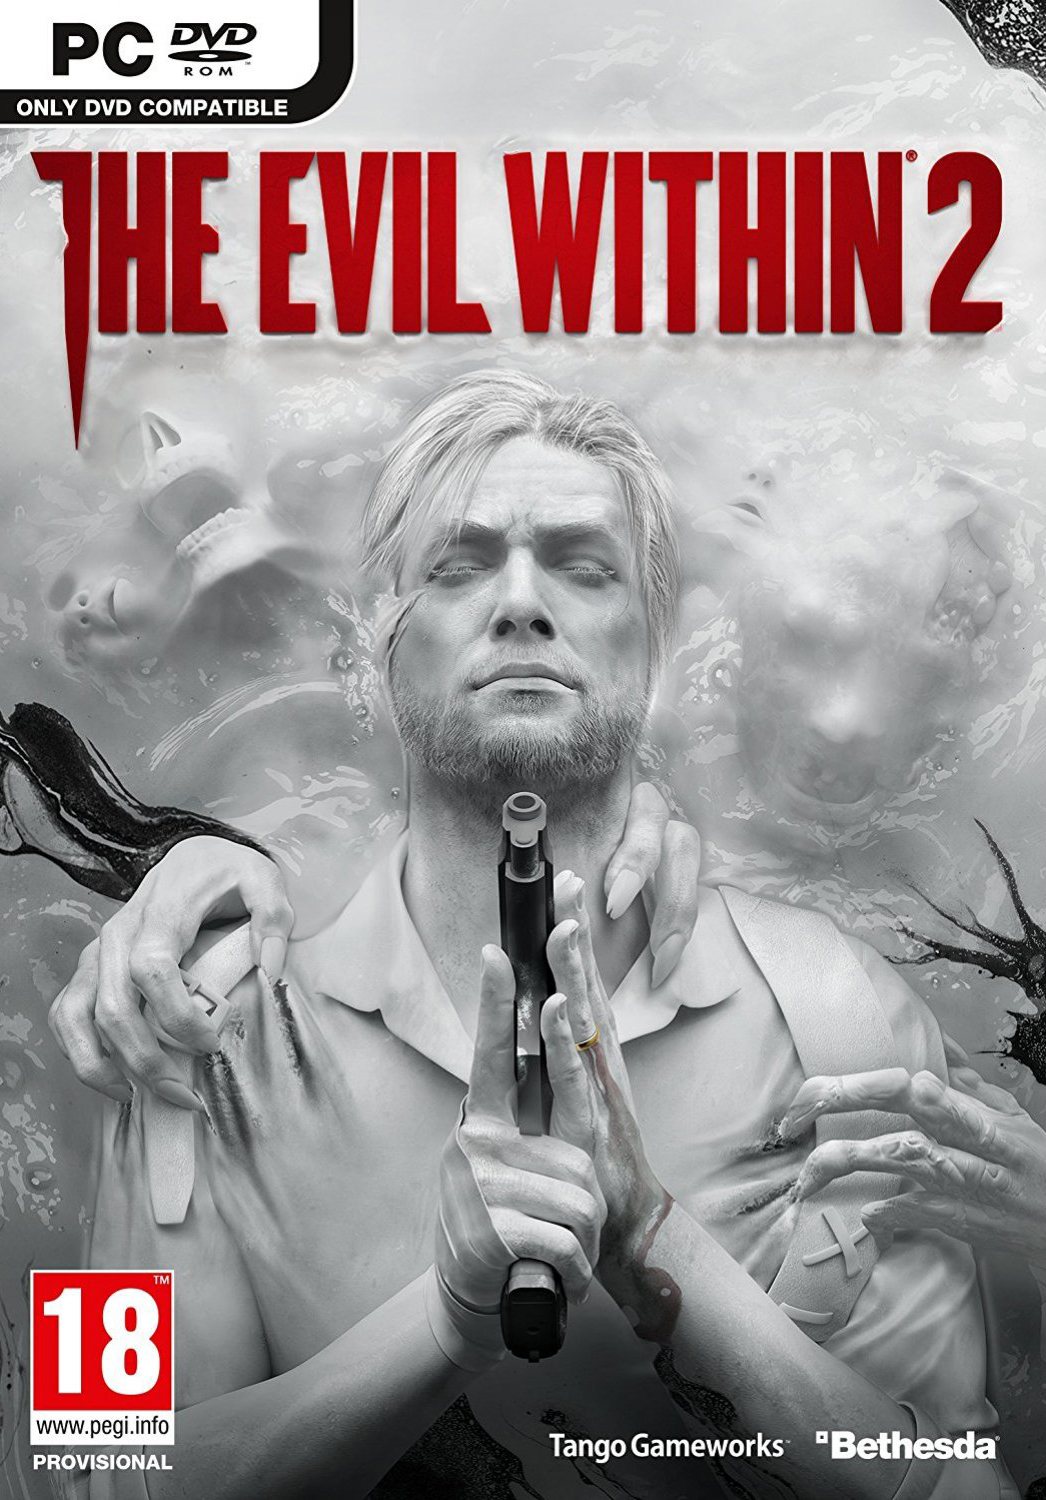 The Evil Within 2 v.1.0.4 + DLC (2017) RePack